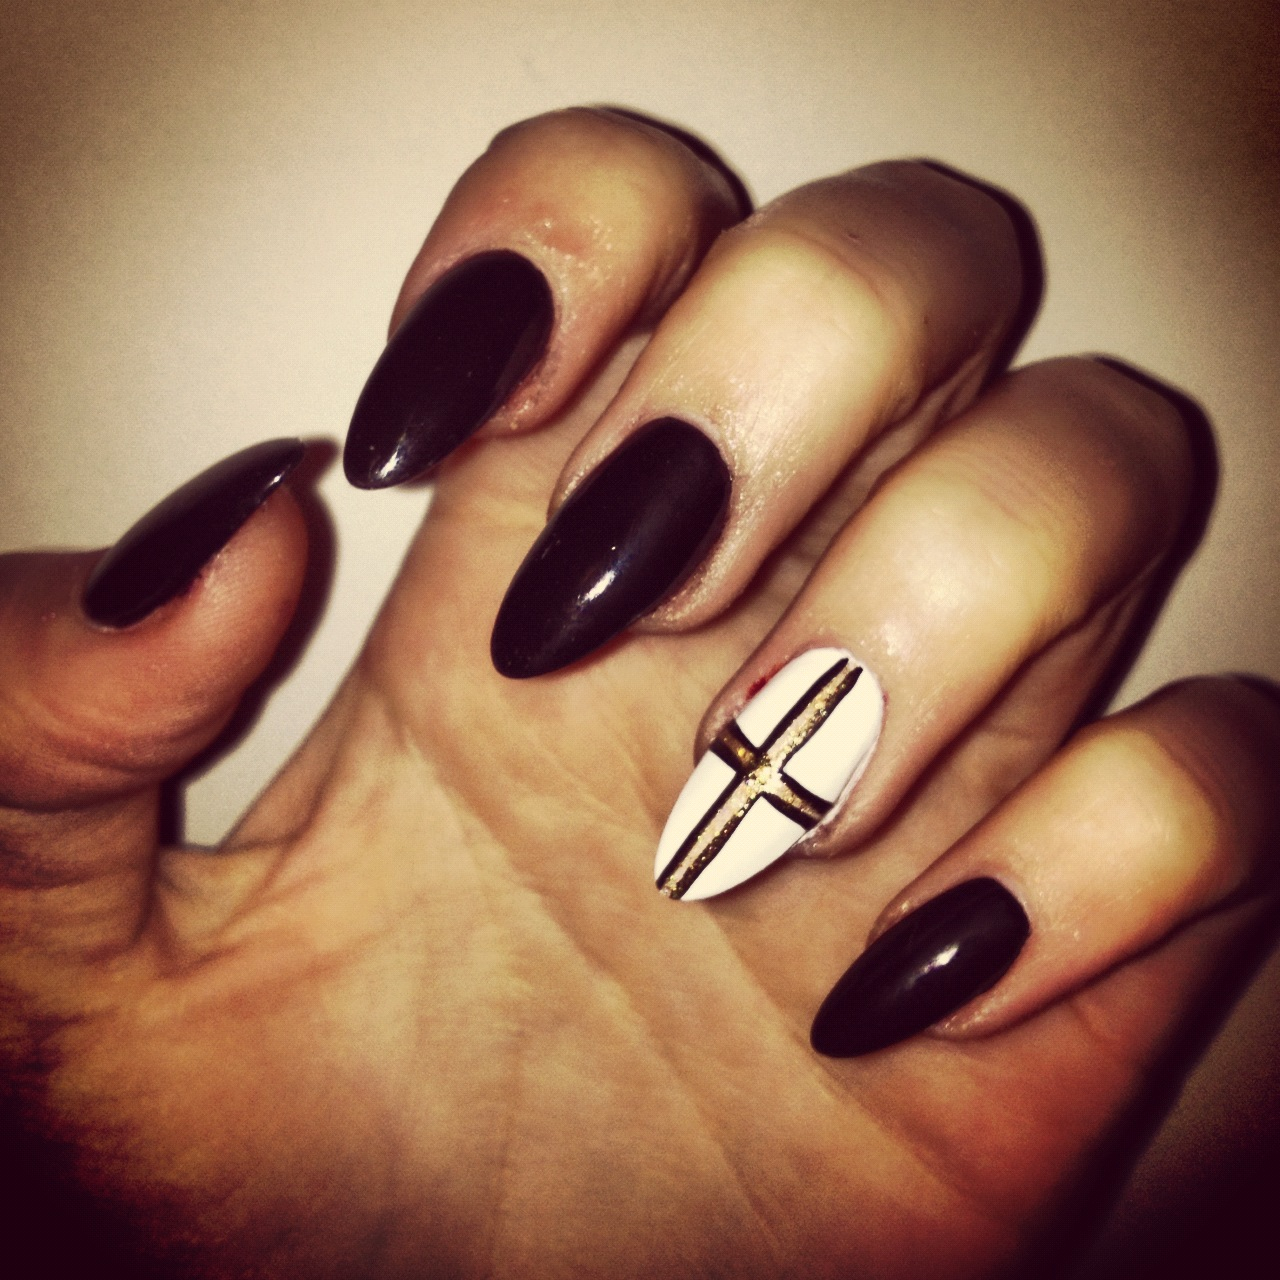 10 Cute Pointy Nails Designs Tumblr Images Long White Nails Tumblr